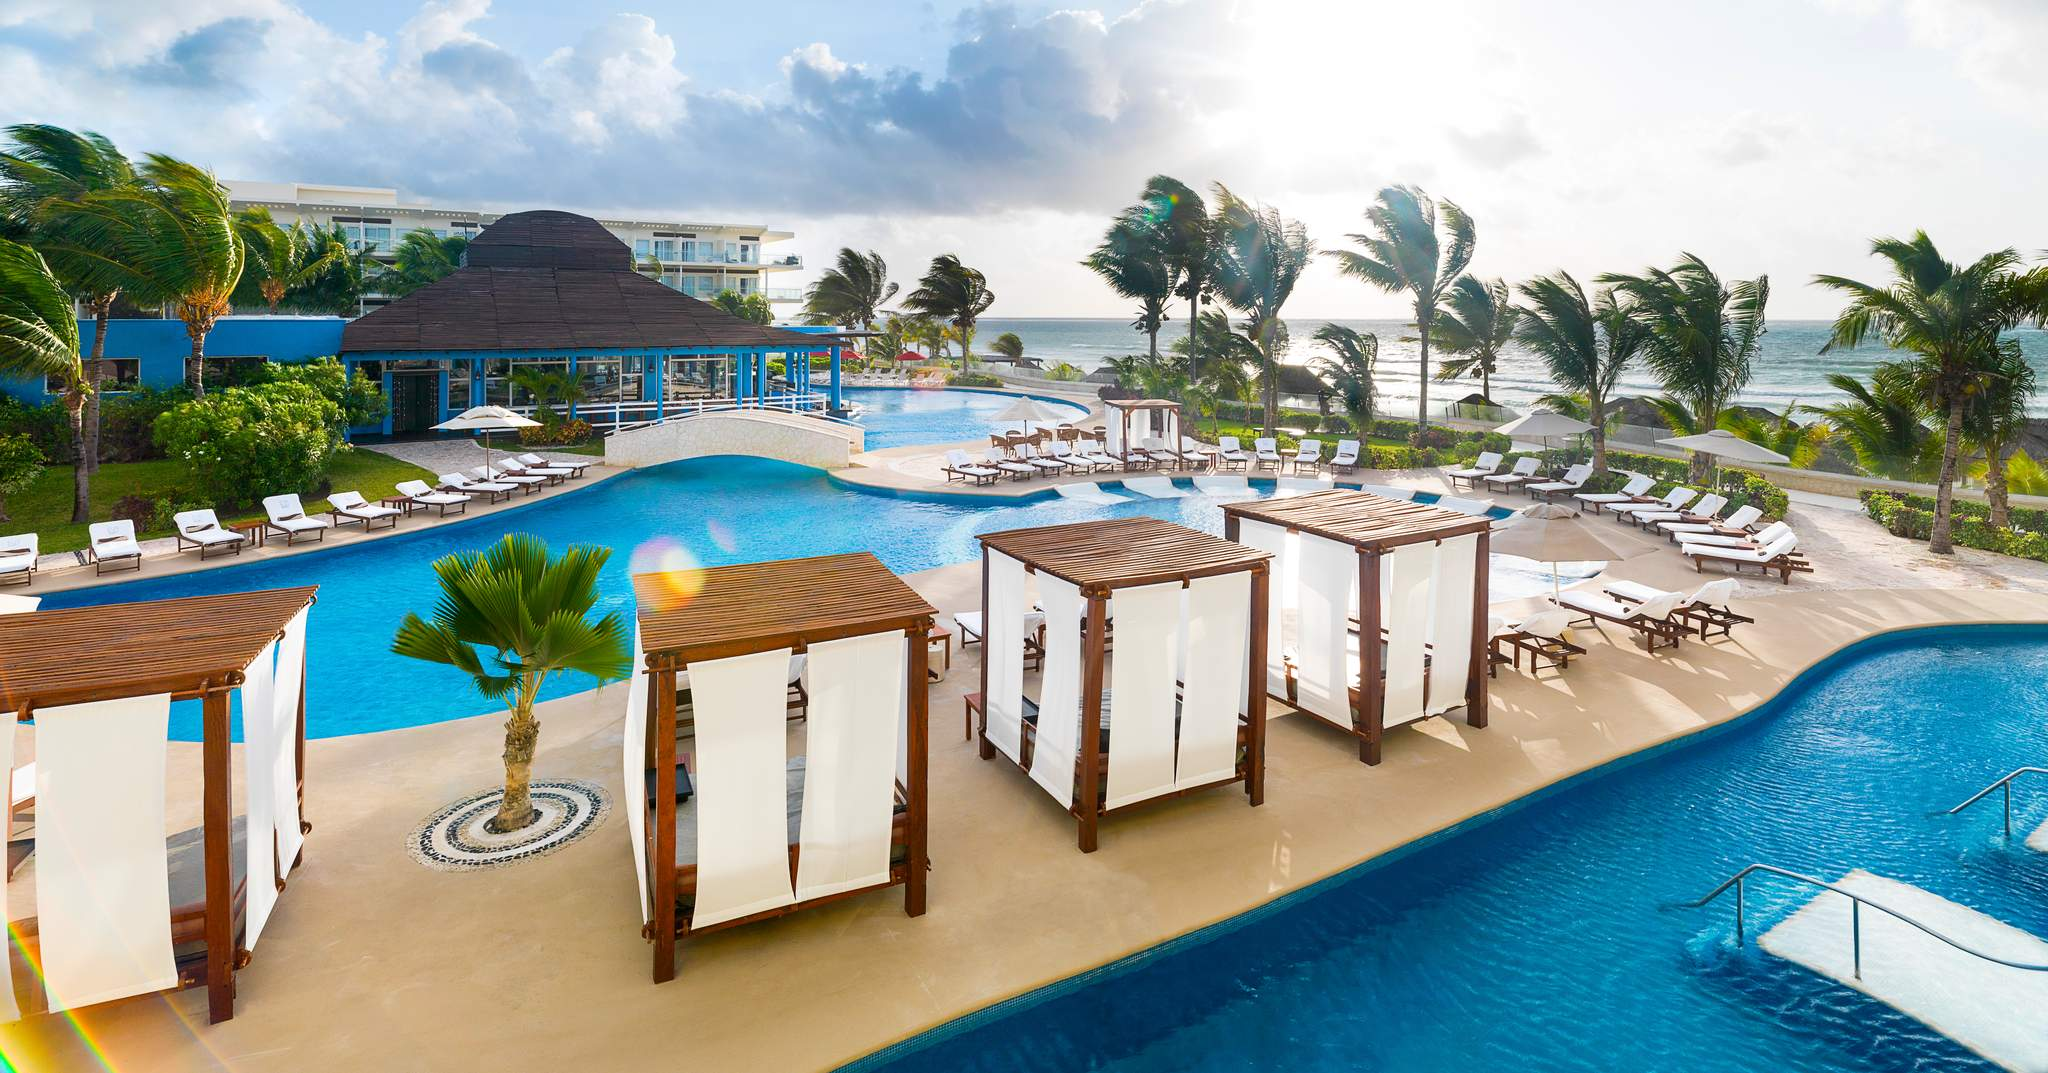 Azul Beach Resort Riviera Cancun in Playa Del Carmen